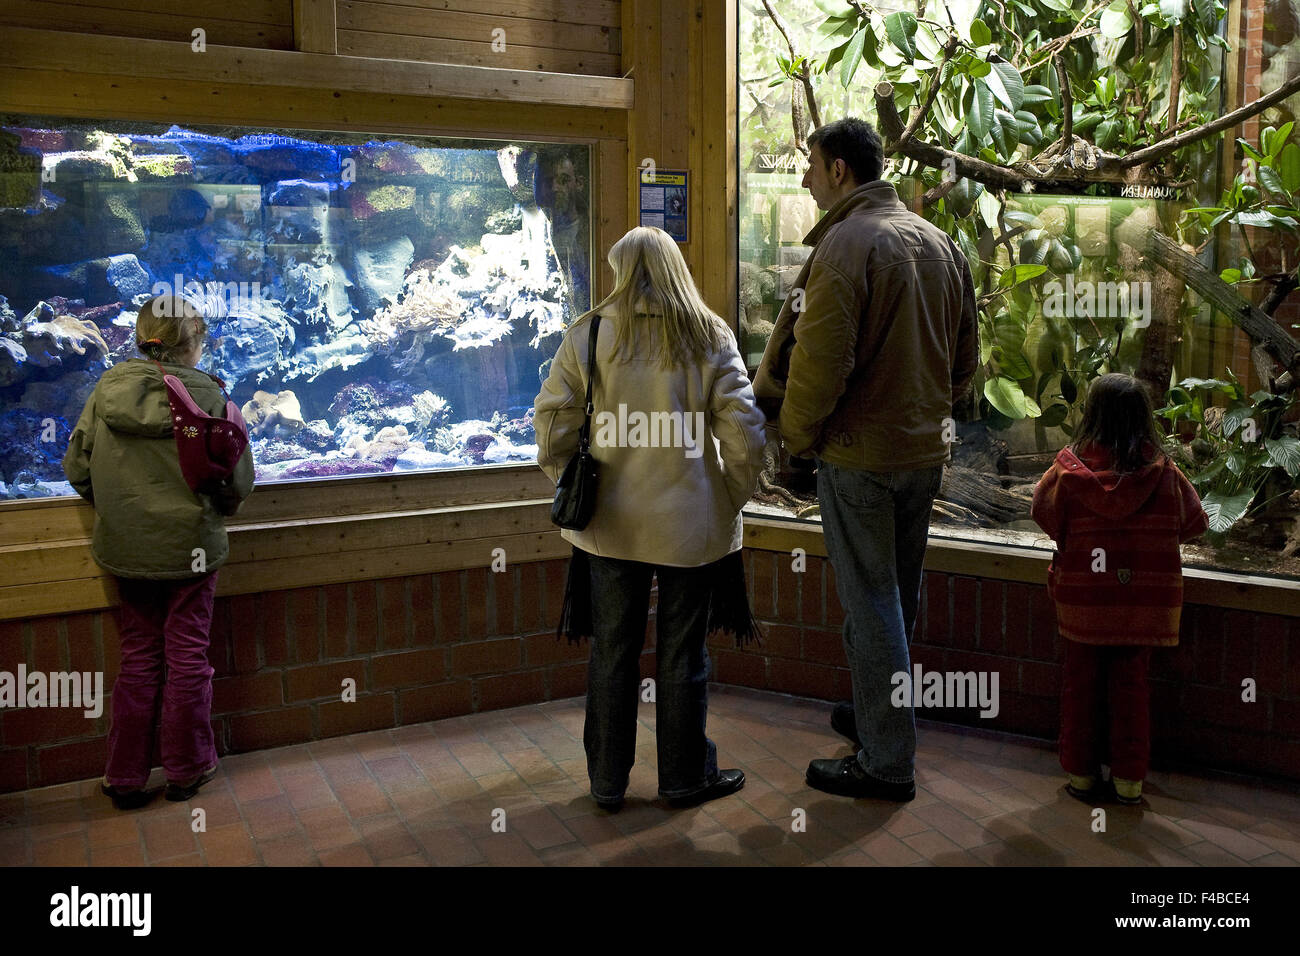 Visitors to the zoo in Bochum, Germany. - Stock Image